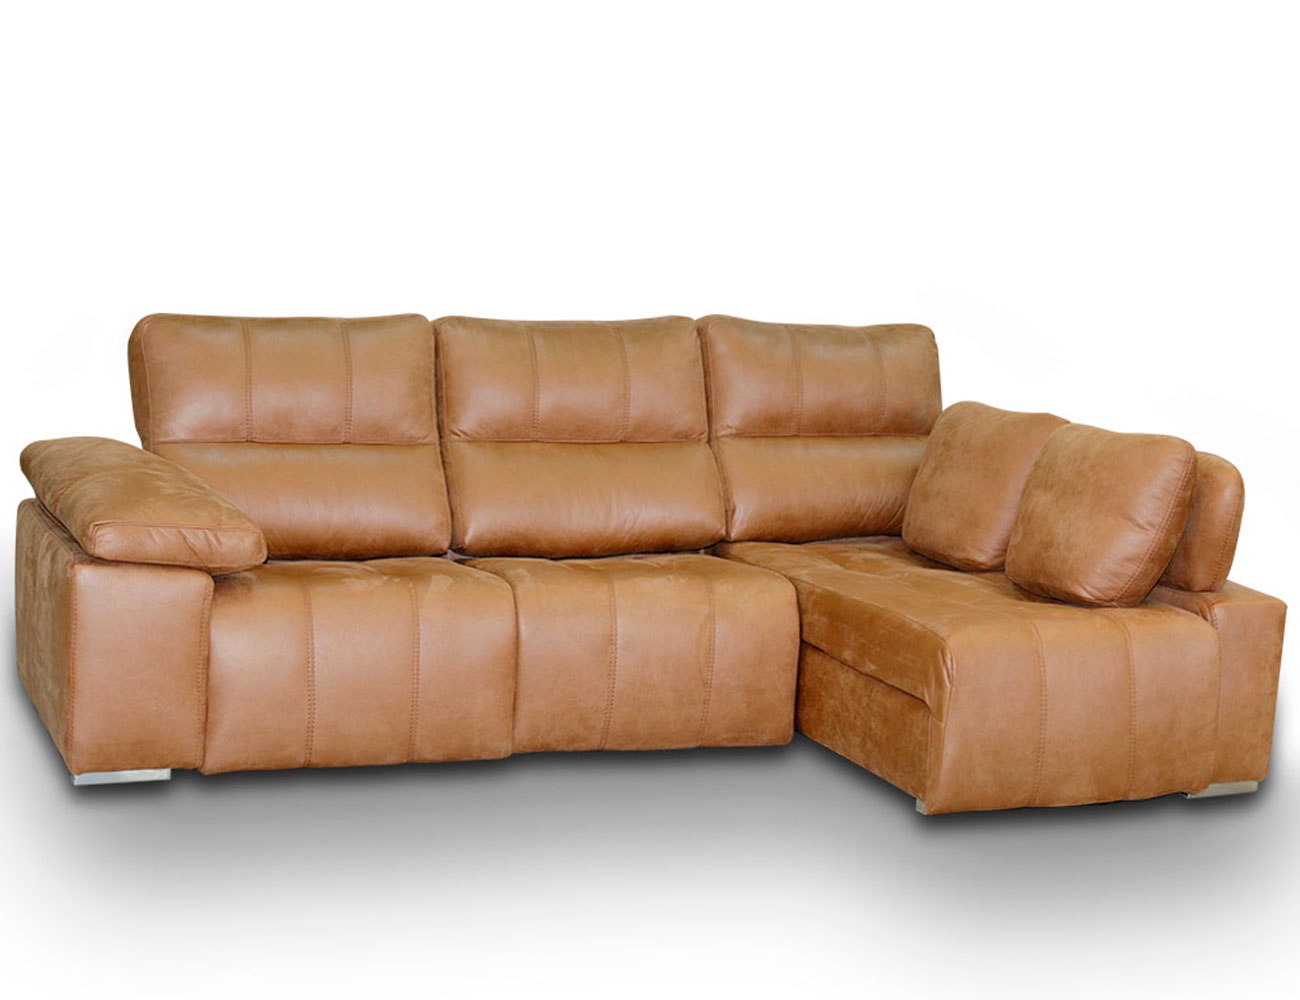 Sofa chaiselongue relax 2 motores anti manchas12